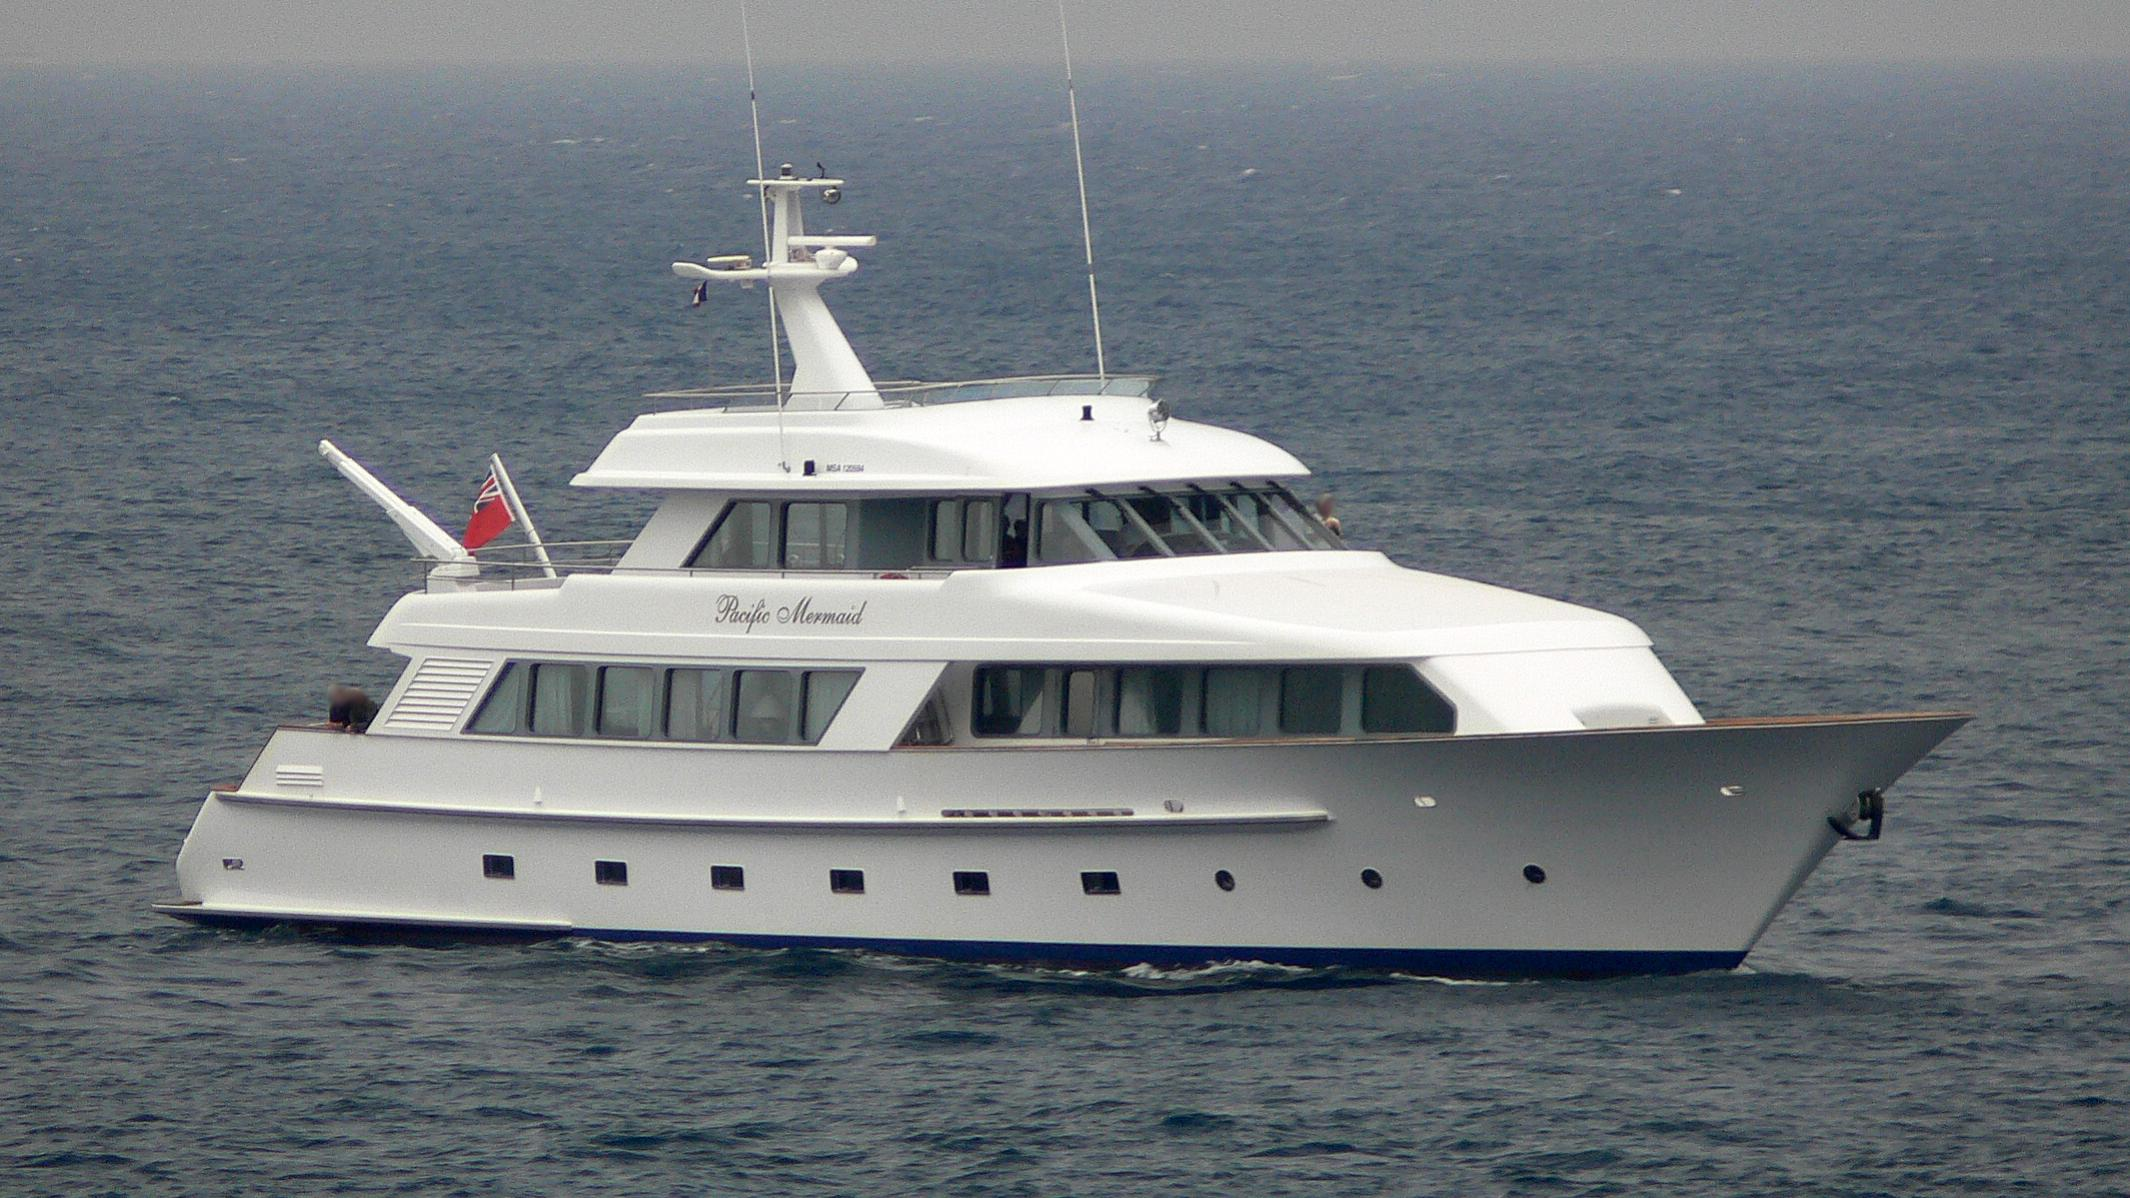 pacific-mermaid-yacht-exterior